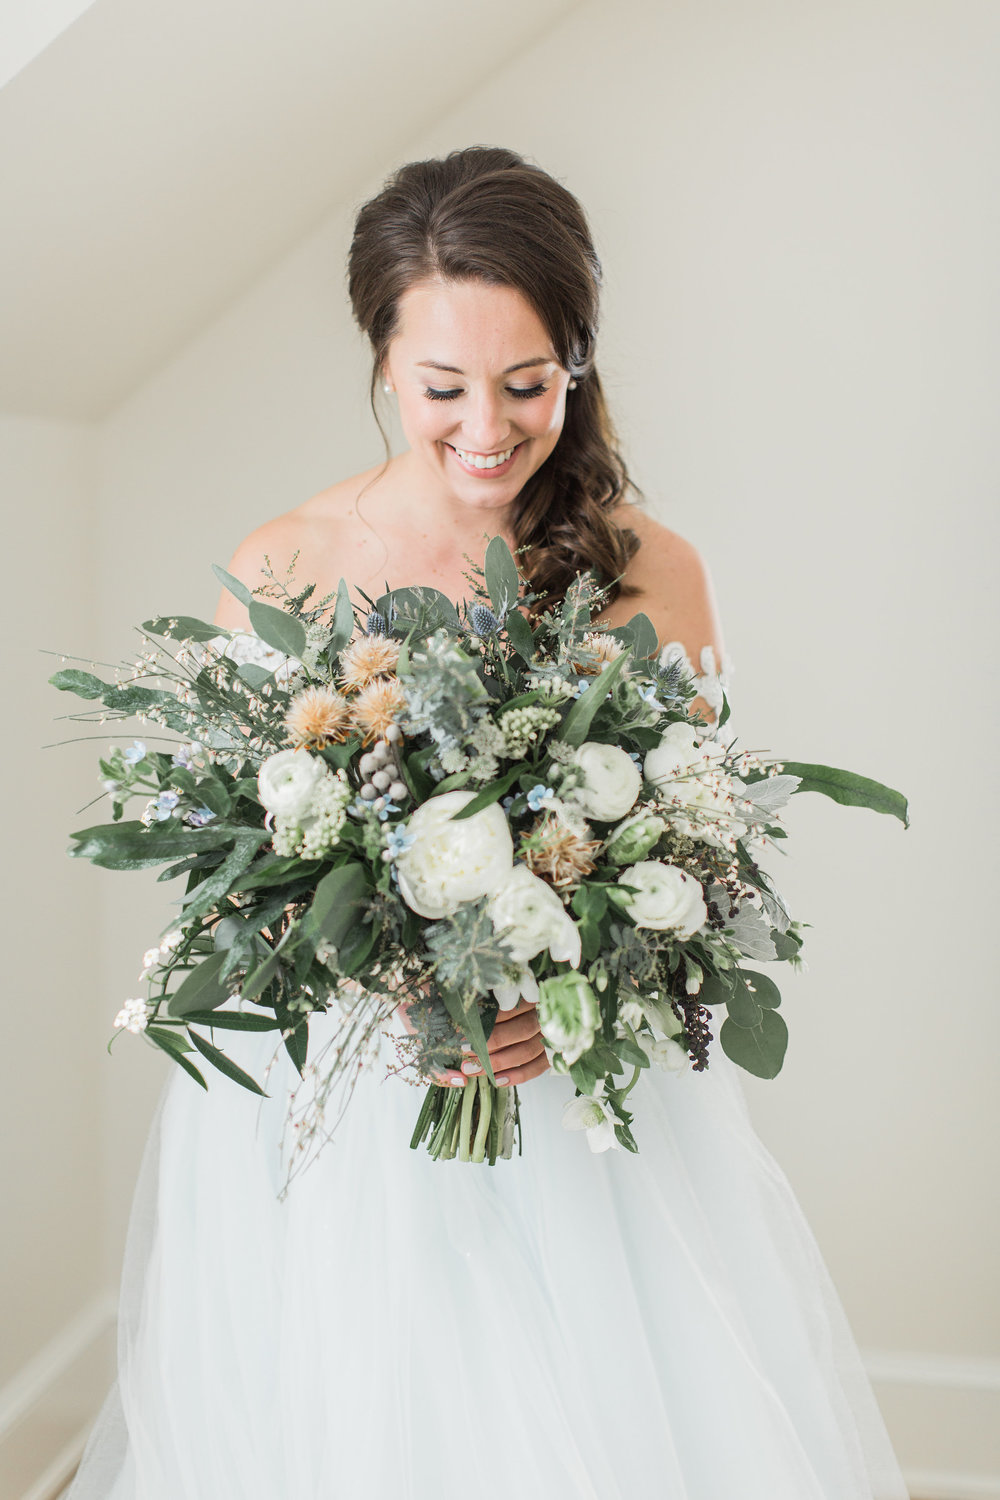 Cunningham_Farm_Winter_Styled_Wedding_Shoot_Meredith_Jane_Photography-26.jpg